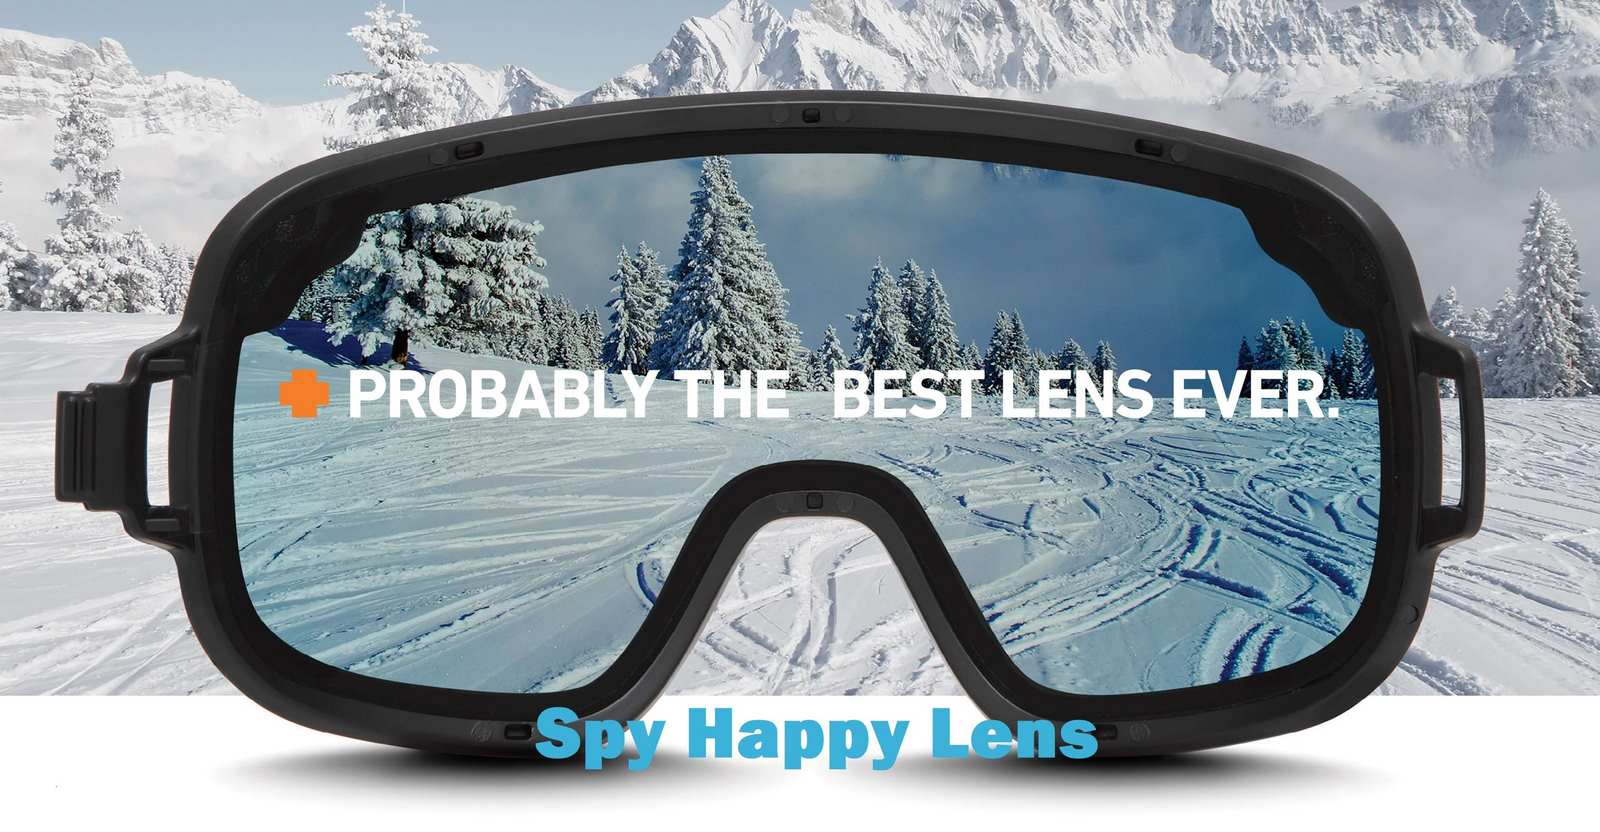 Spy Happy Lens